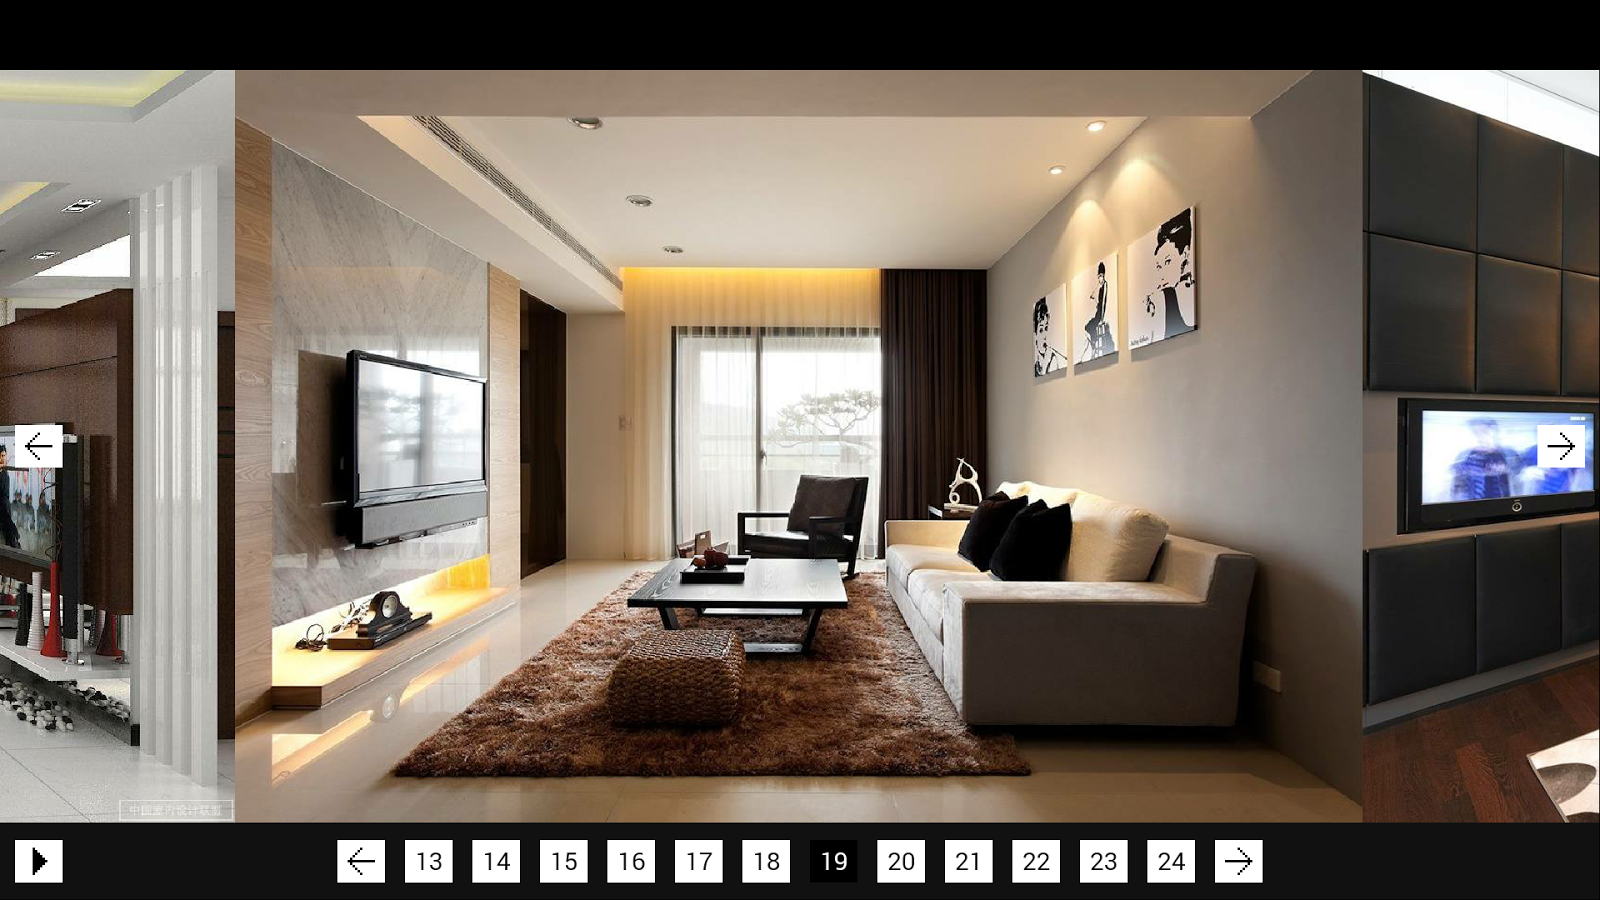 Home interior design android apps on google play Free interior design